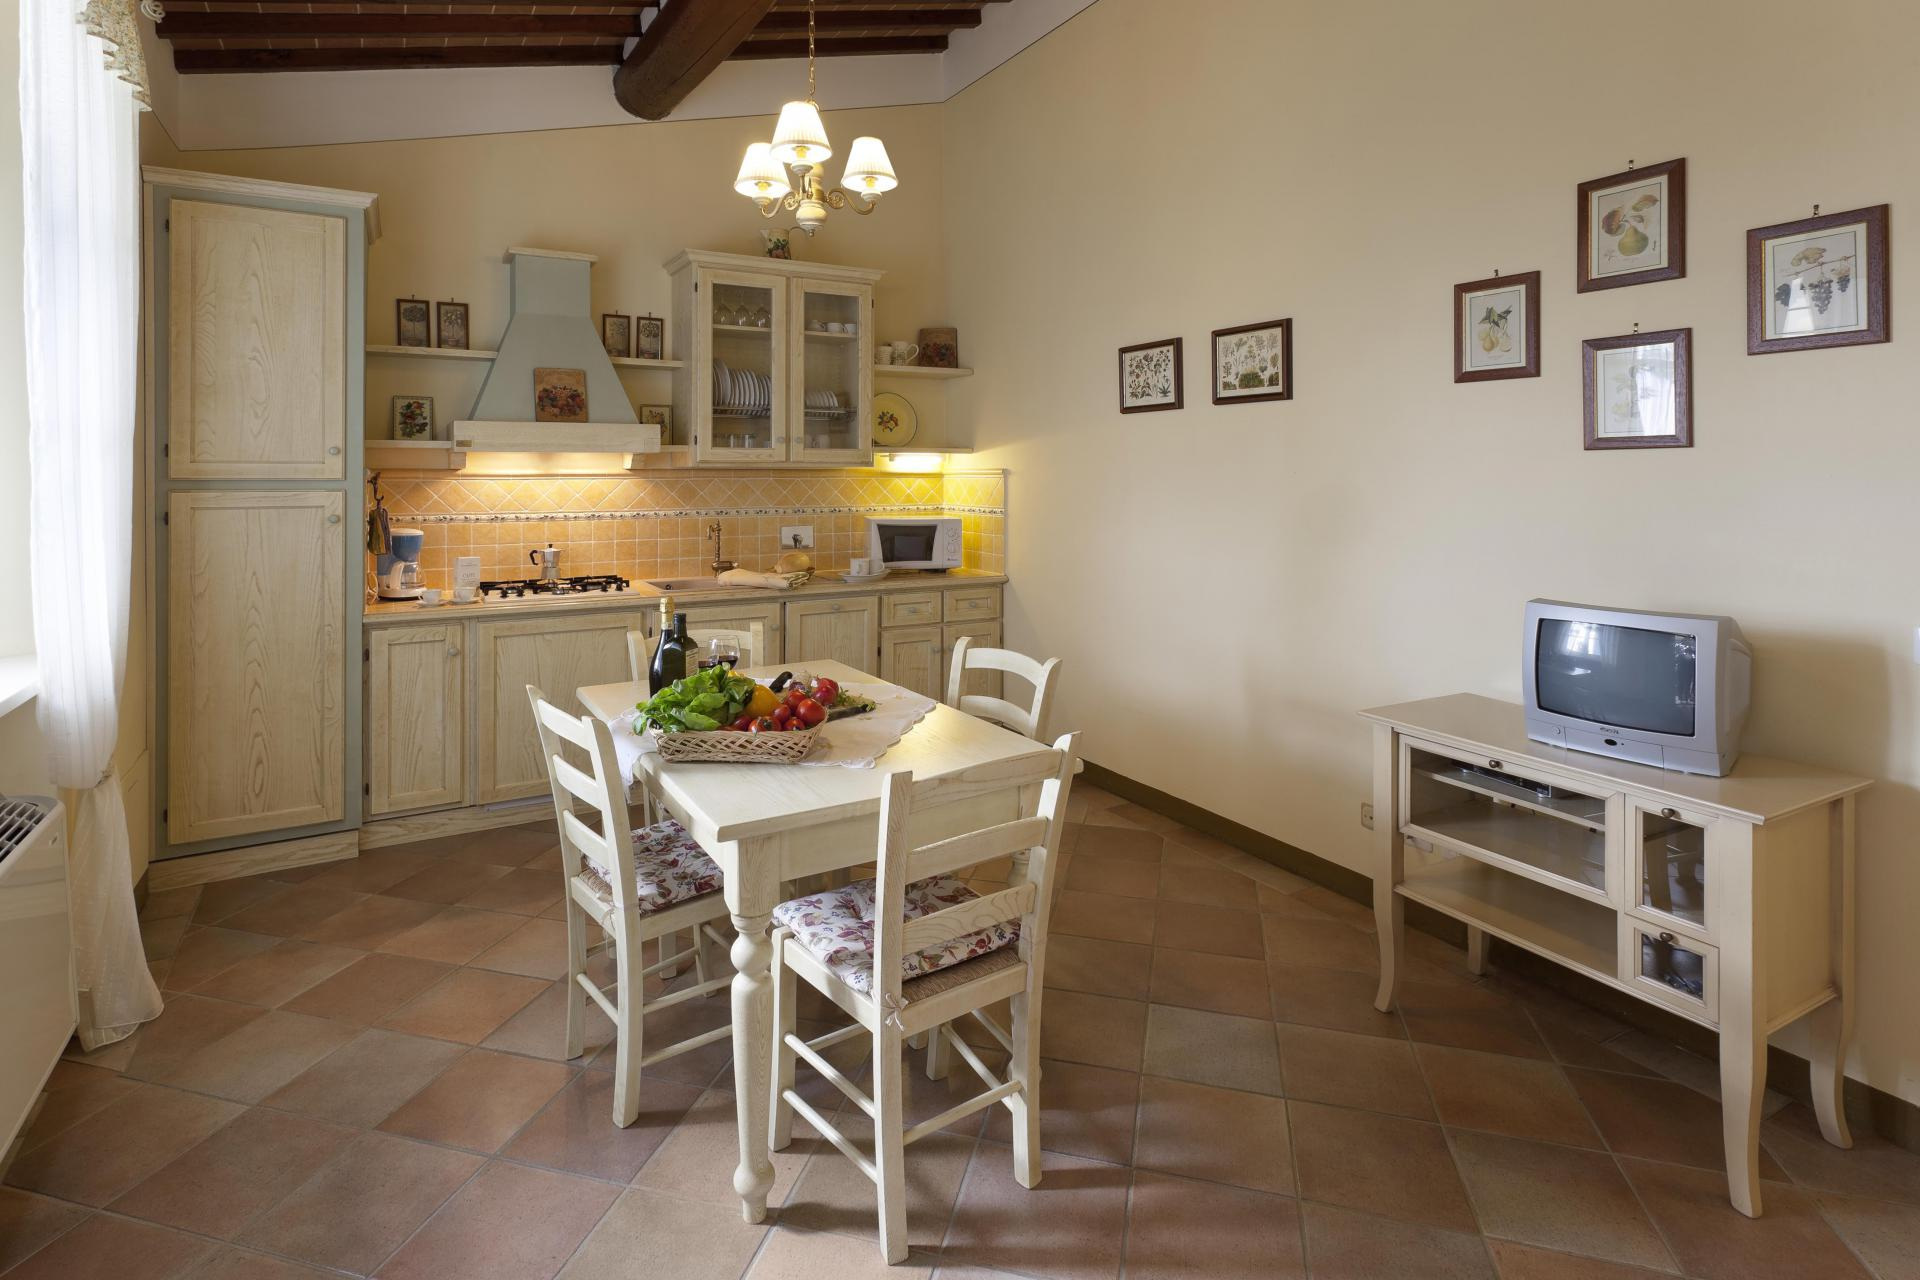 Agriturismo Tuscany Agriturismo Tuscany, very attractive and hospitable